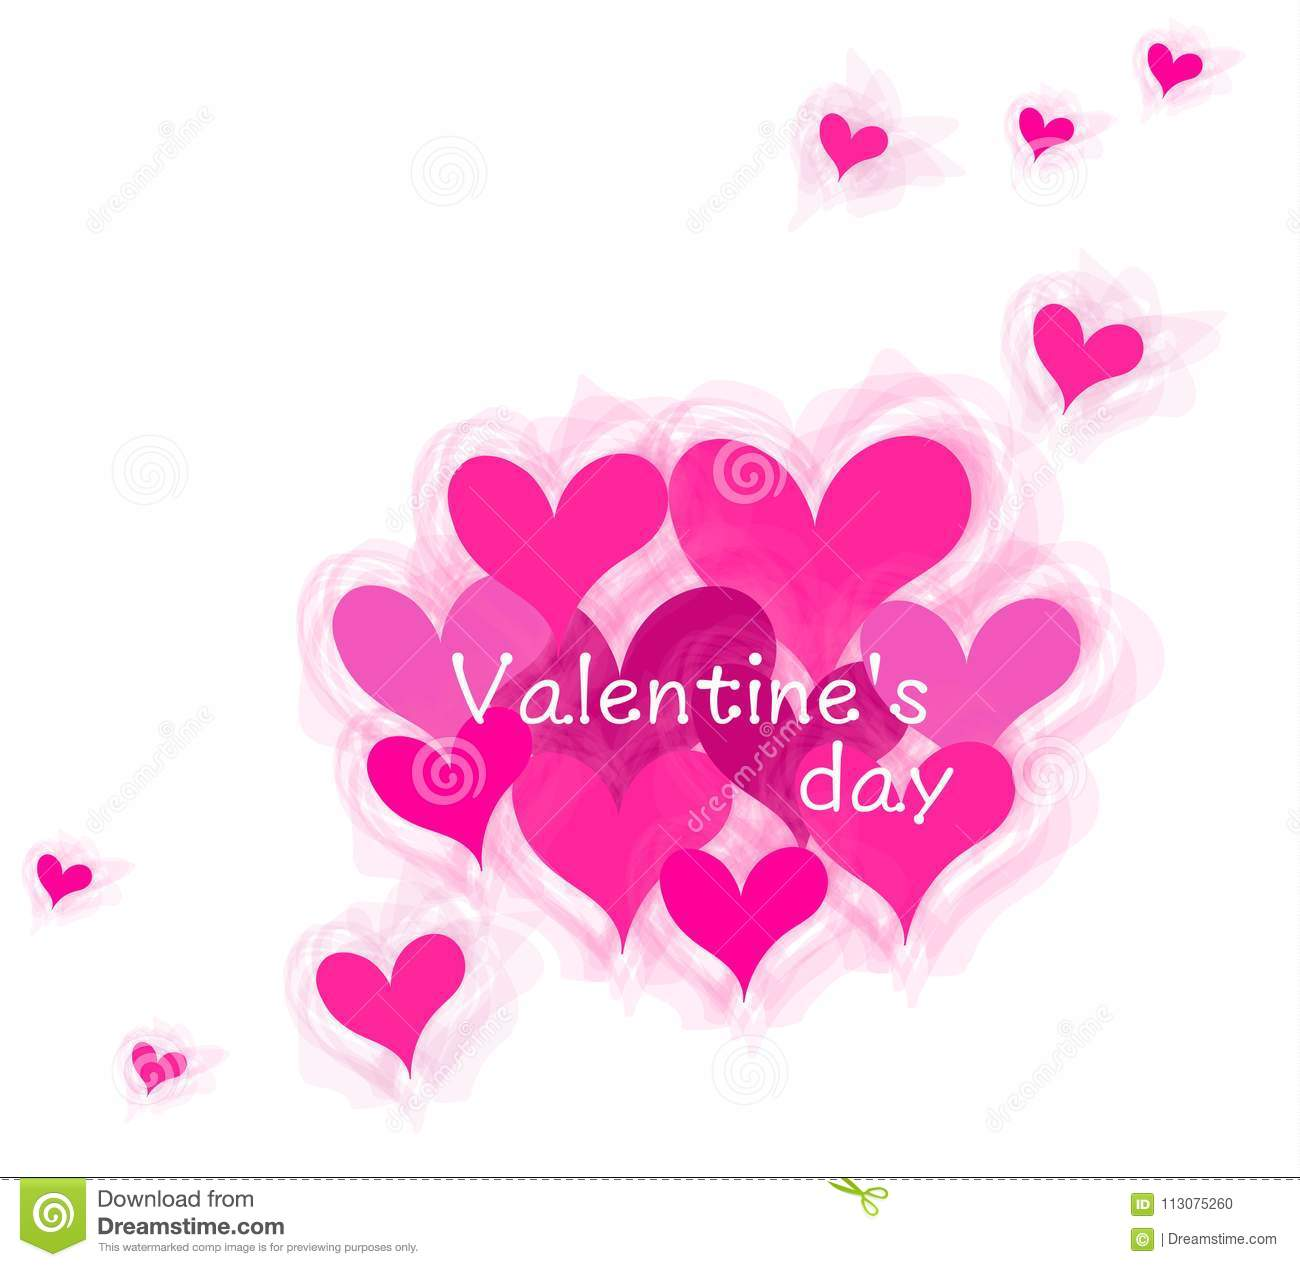 Heart and Valentine Word Images and Artwork.